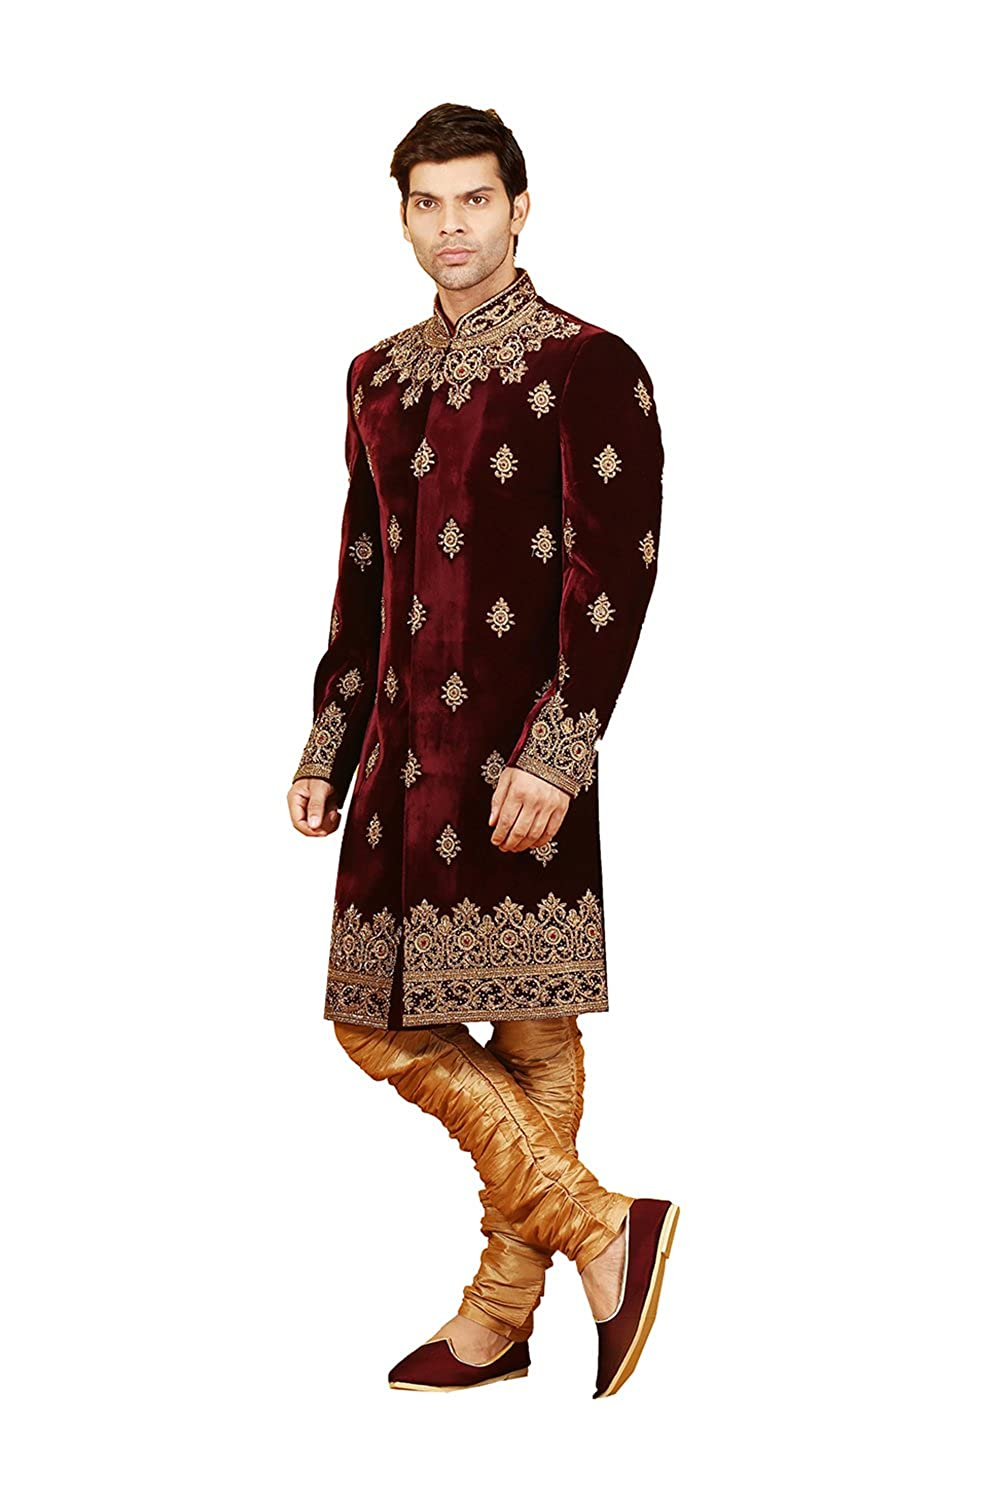 59b281f2e10 Indian Fashion Mens Indo Western Wedding Wine Designer Partywear  Traditional R-25423 at Amazon Men s Clothing store